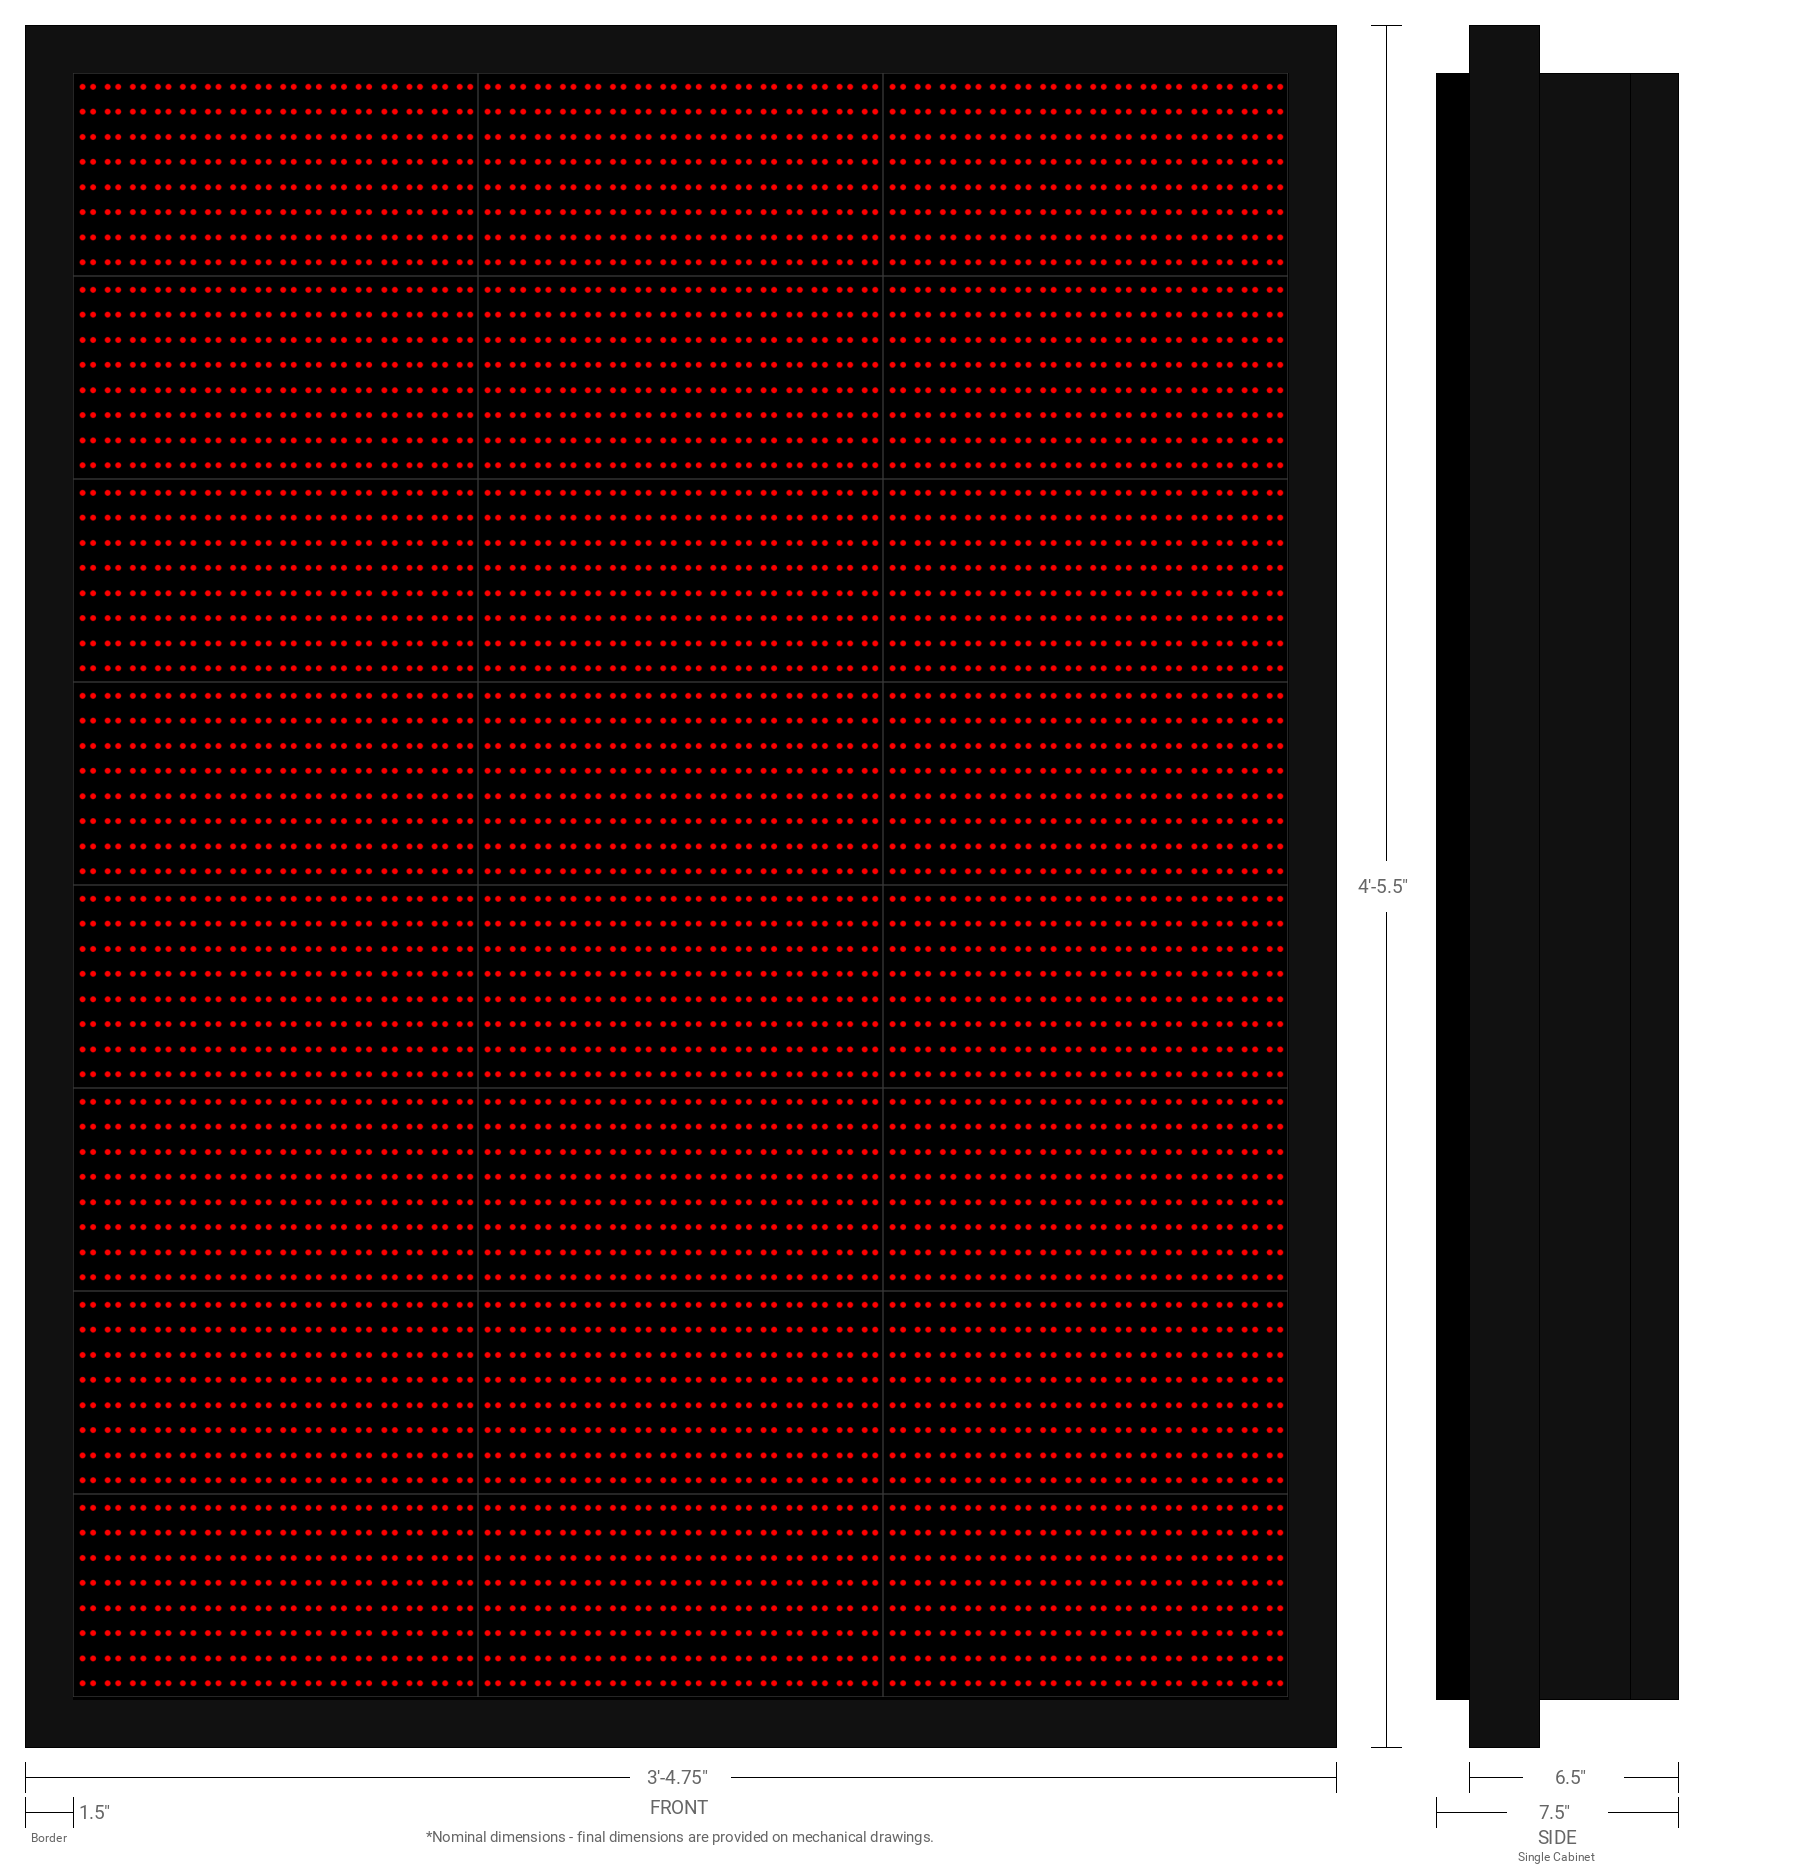 Polaris 20mm 64x48 Single Sided Grayscale Red LED Display